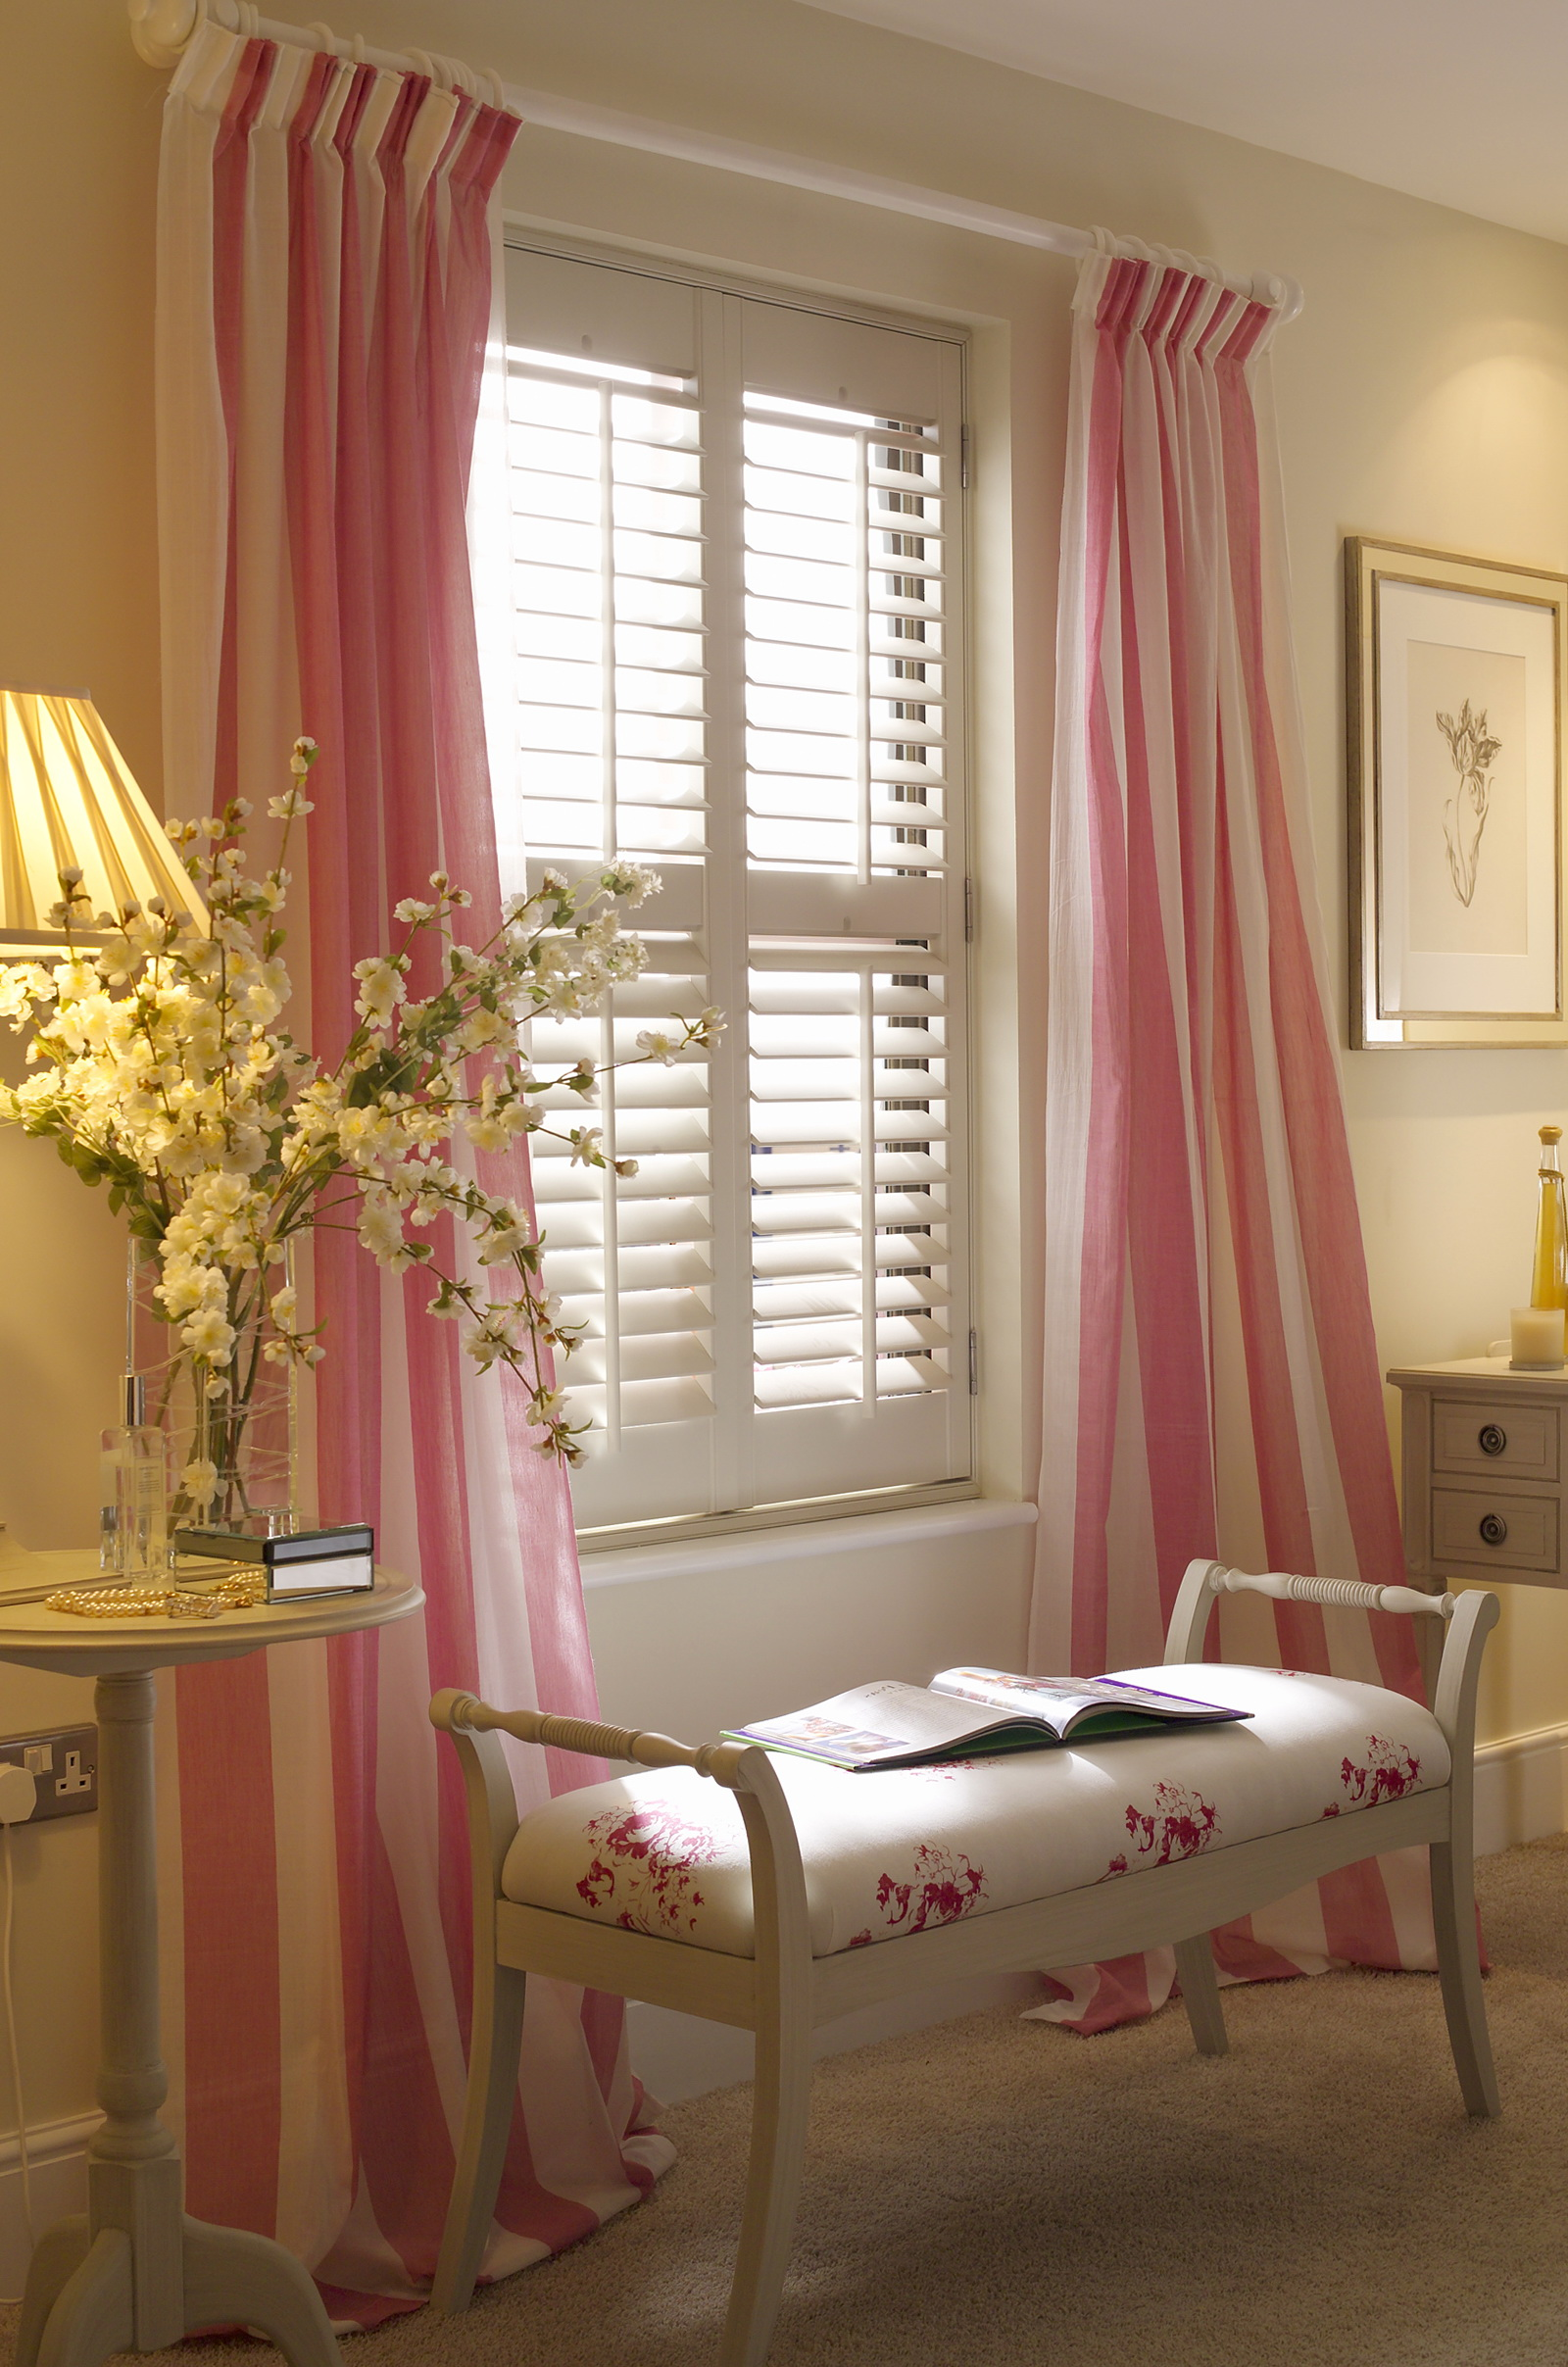 Cafe Style Shutters With Curtains Home Design Ideas